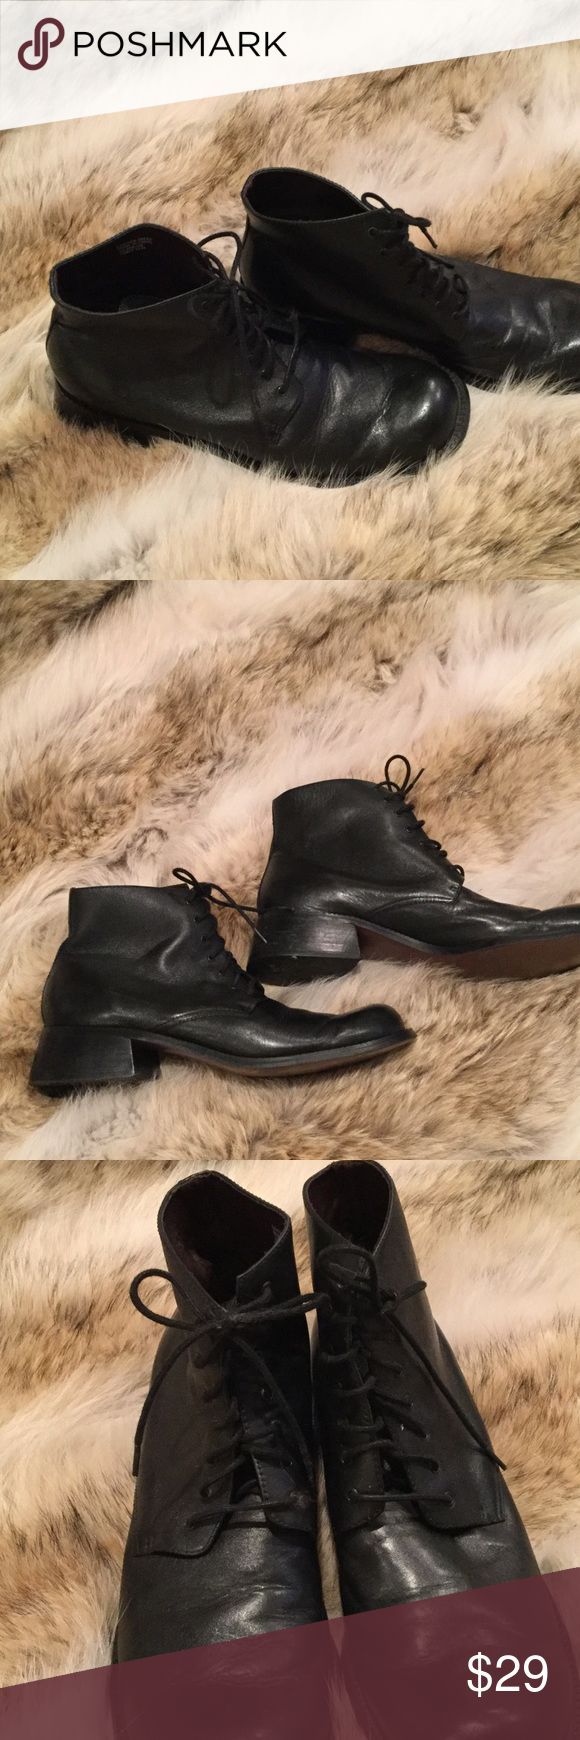 Ladies ankle boots with lace up black. Leather 11 Ladies black leather lace up ankle boots in black. Leather with. One inch heel. Size 11 and worn very lightly . sam and libby Shoes Ankle Boots & Booties